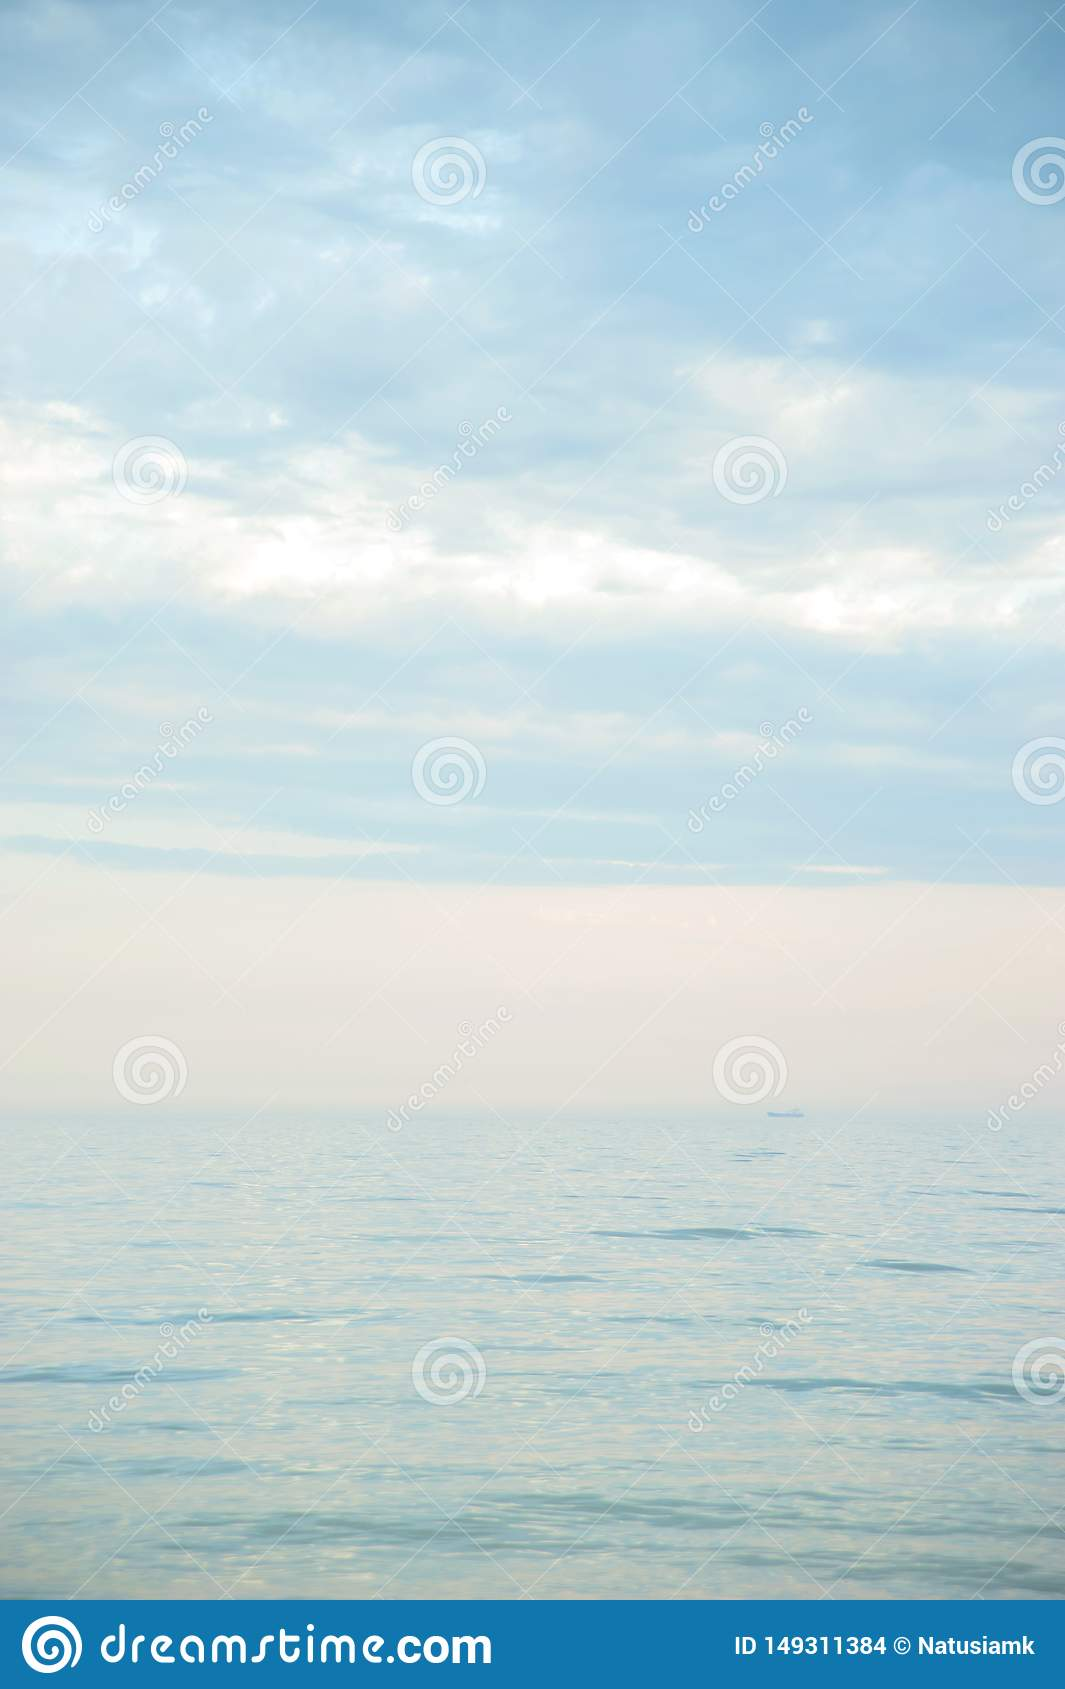 Seascape with sea horizon and blue sky. Background. Painterly seascape scene with relaxing sunset colours